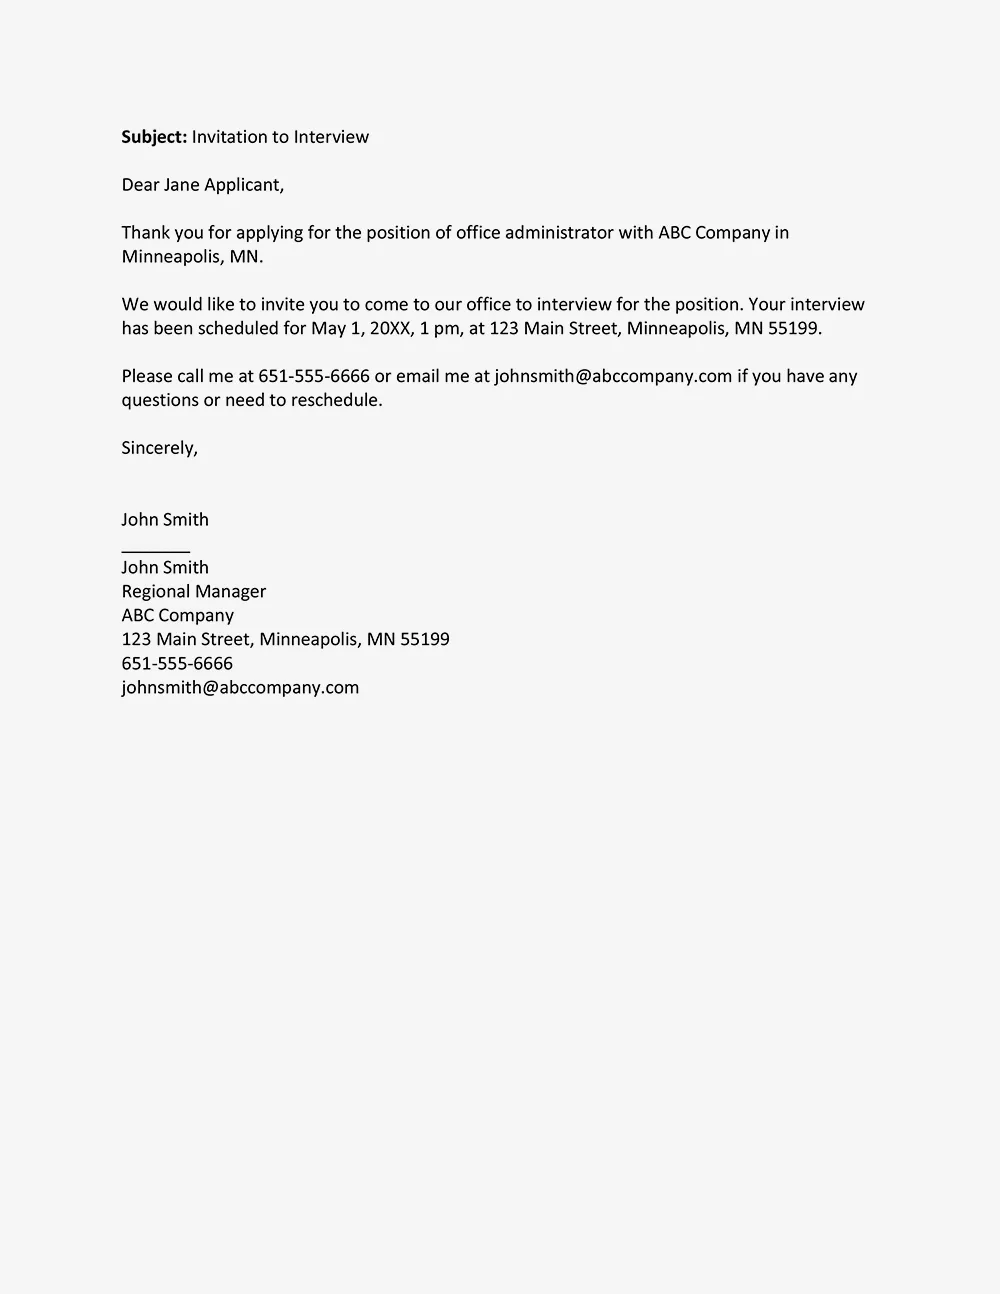 Job Interview Invitation Letter Examples  Interview invitation